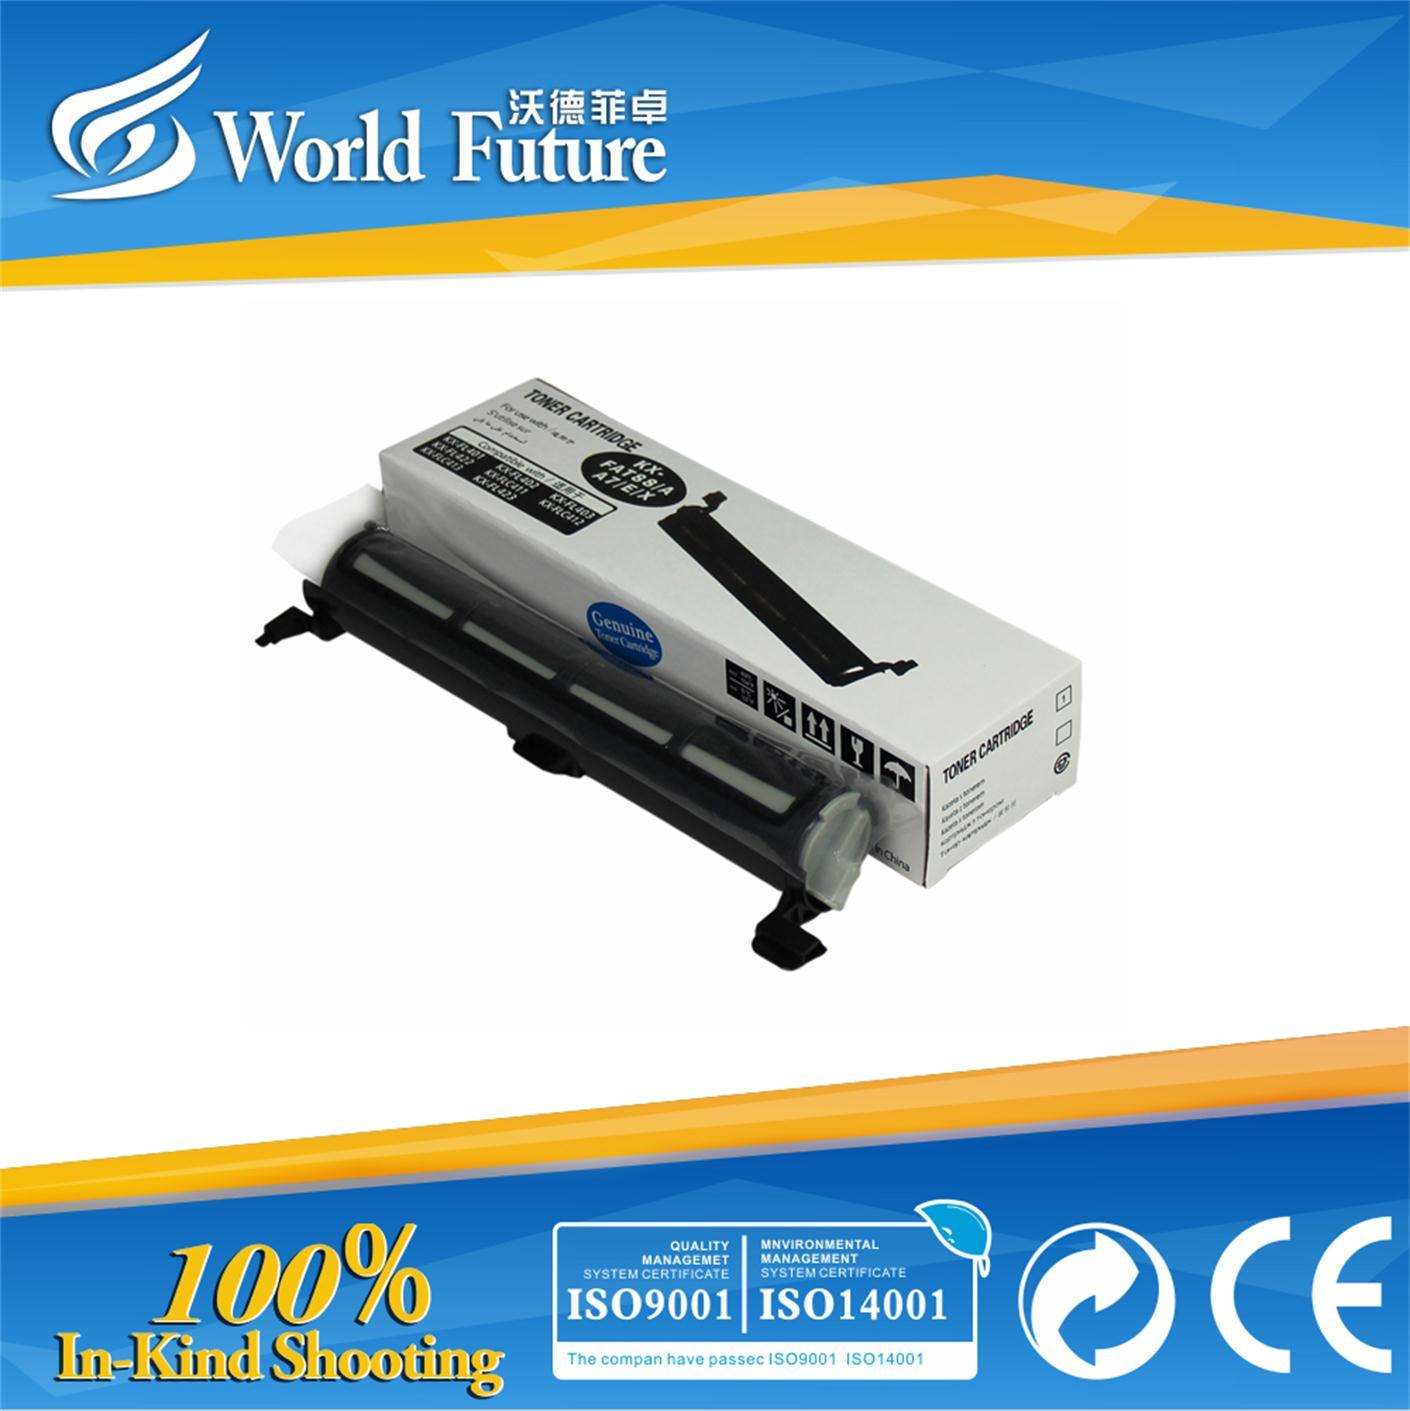 Laser Printer Toner Cartridge Kx-Fat88A/E/A7/X) (Toner) for Use in Kx-FL401/402/403/313cn/315cn/318cn/; Kx-Flc411/412/413c